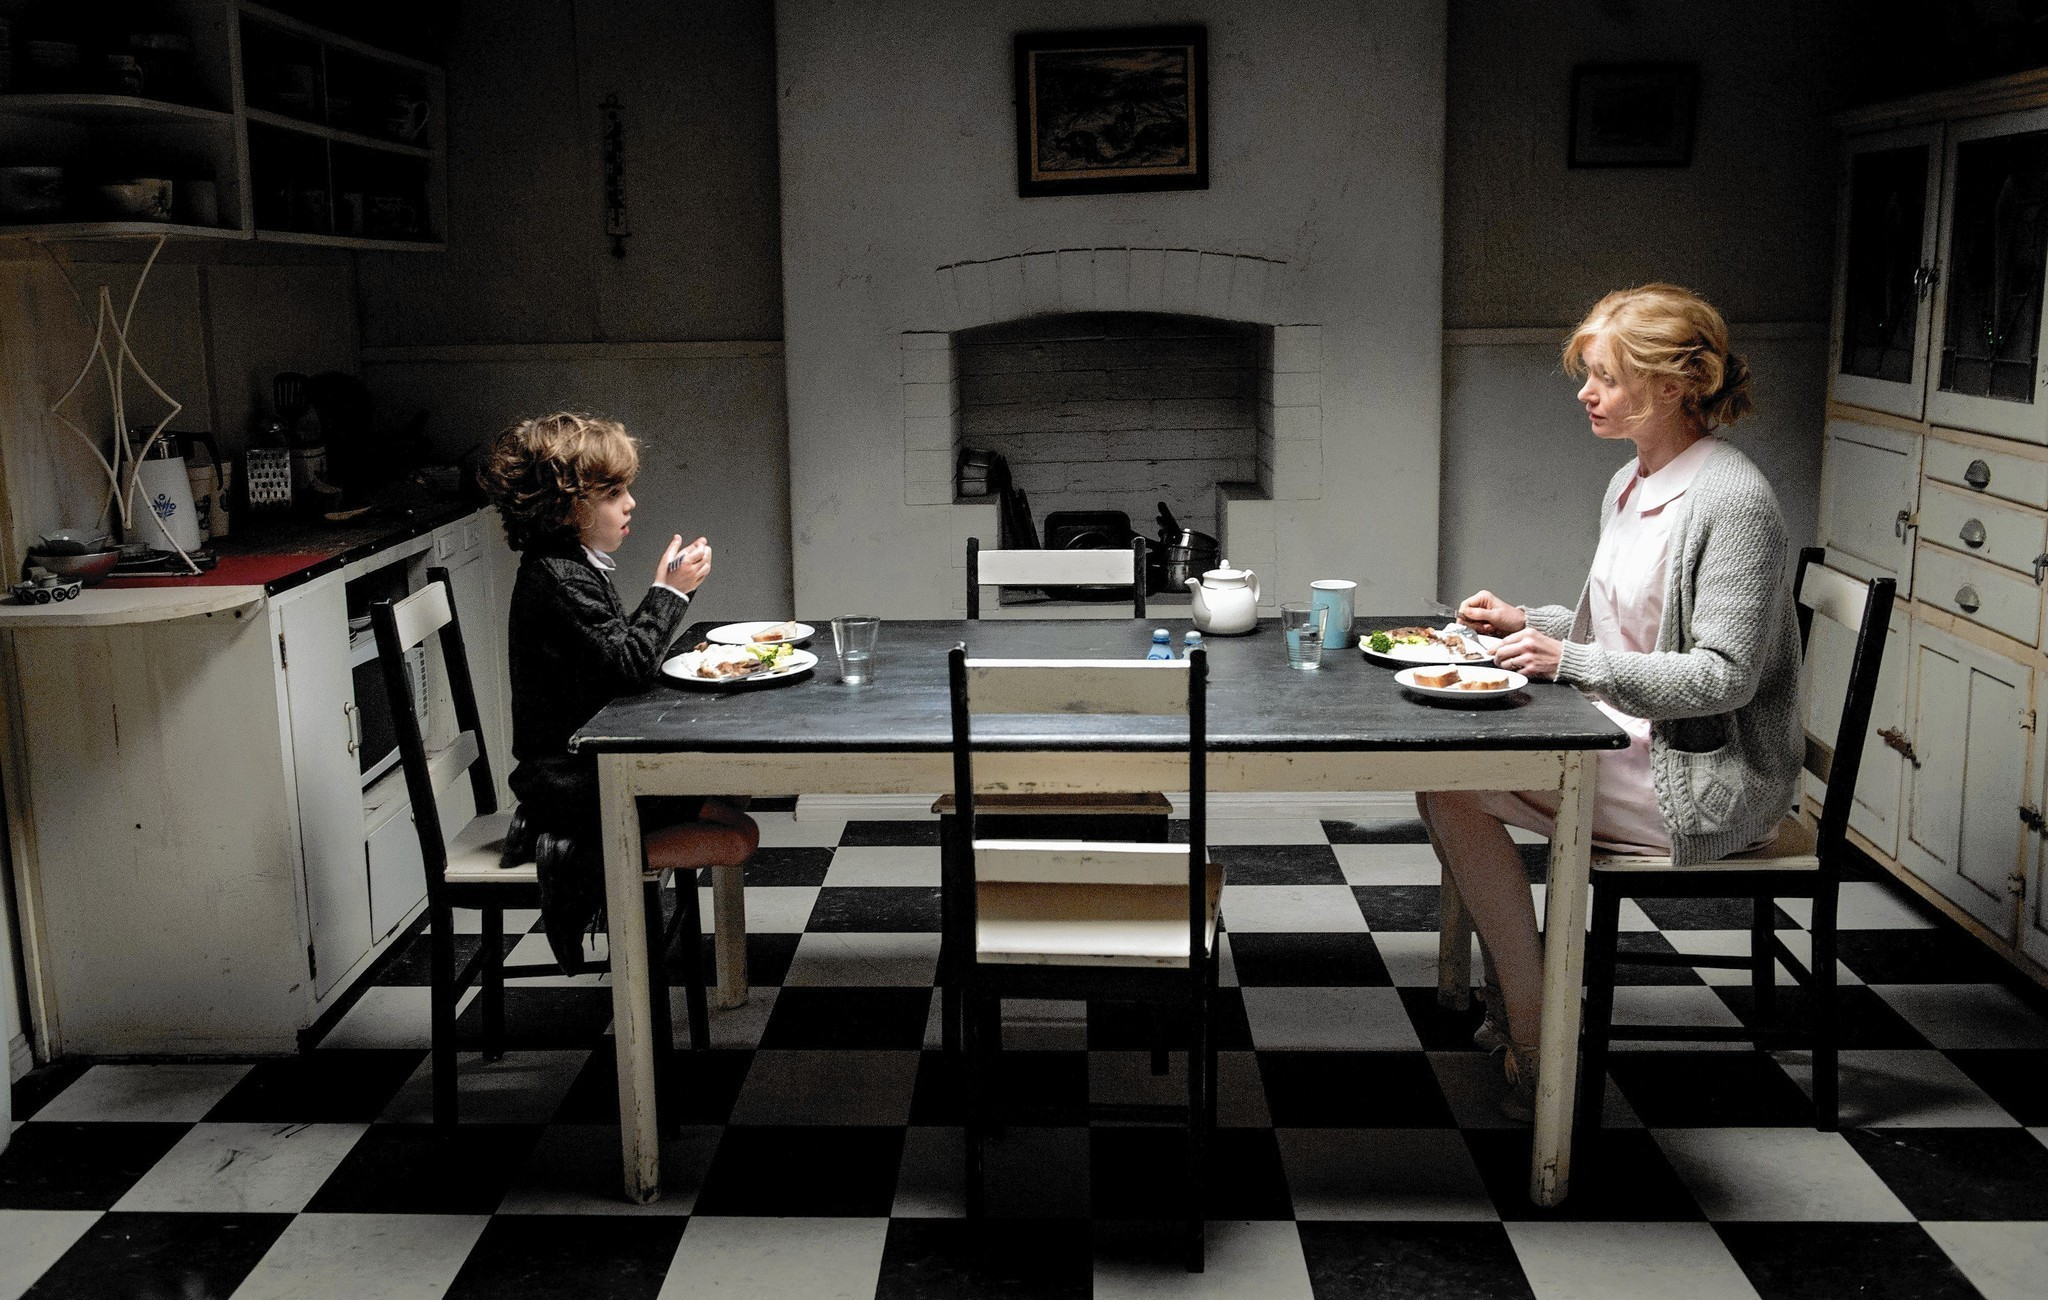 Lighting Basement Washroom Stairs: 'The Babadook' Is An Emotional Ride, 'What If' Is